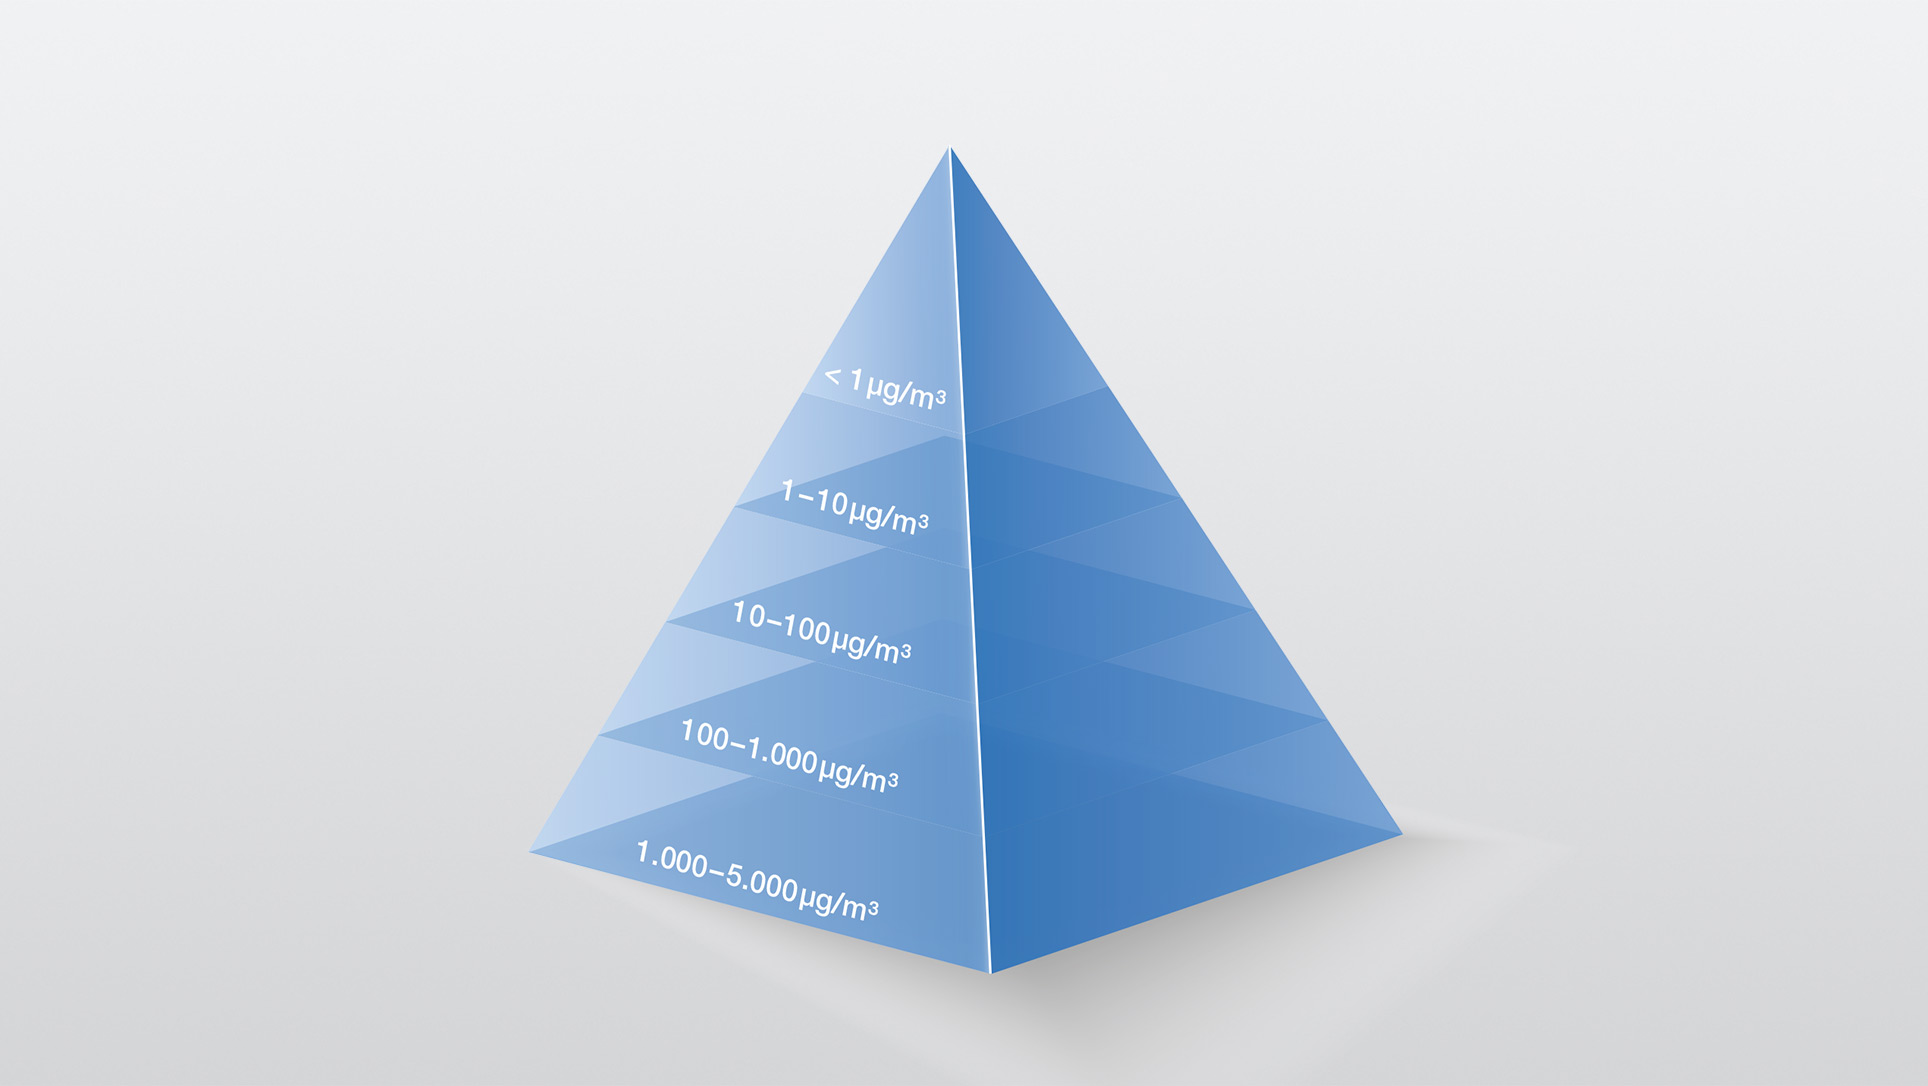 Containment Pyramid showing the banding of OEL into bands.